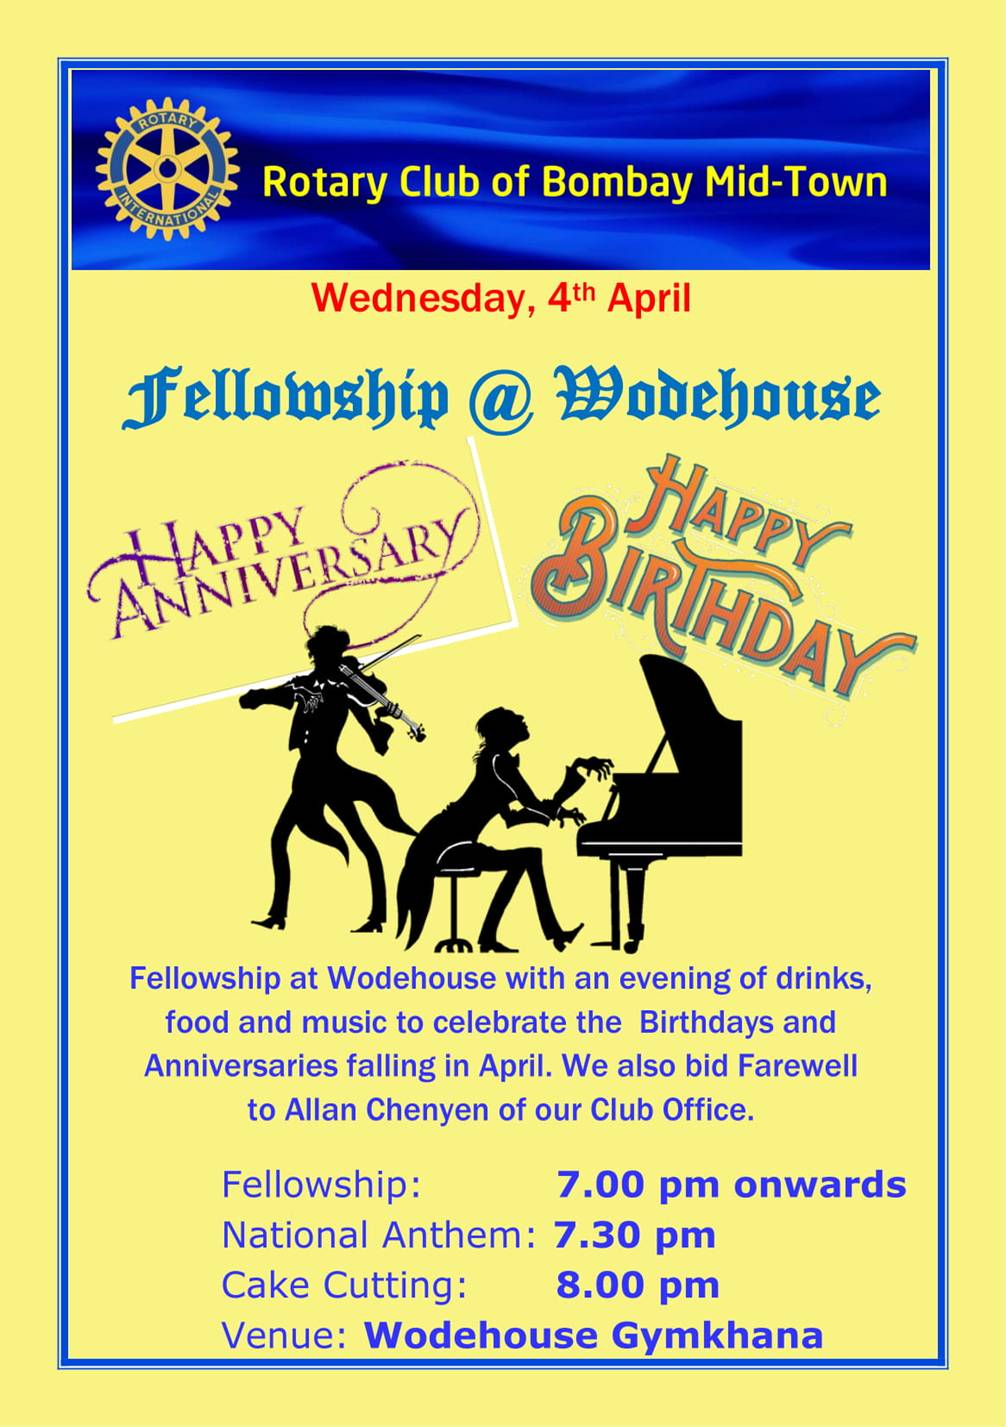 Fellowship at Wodehouse